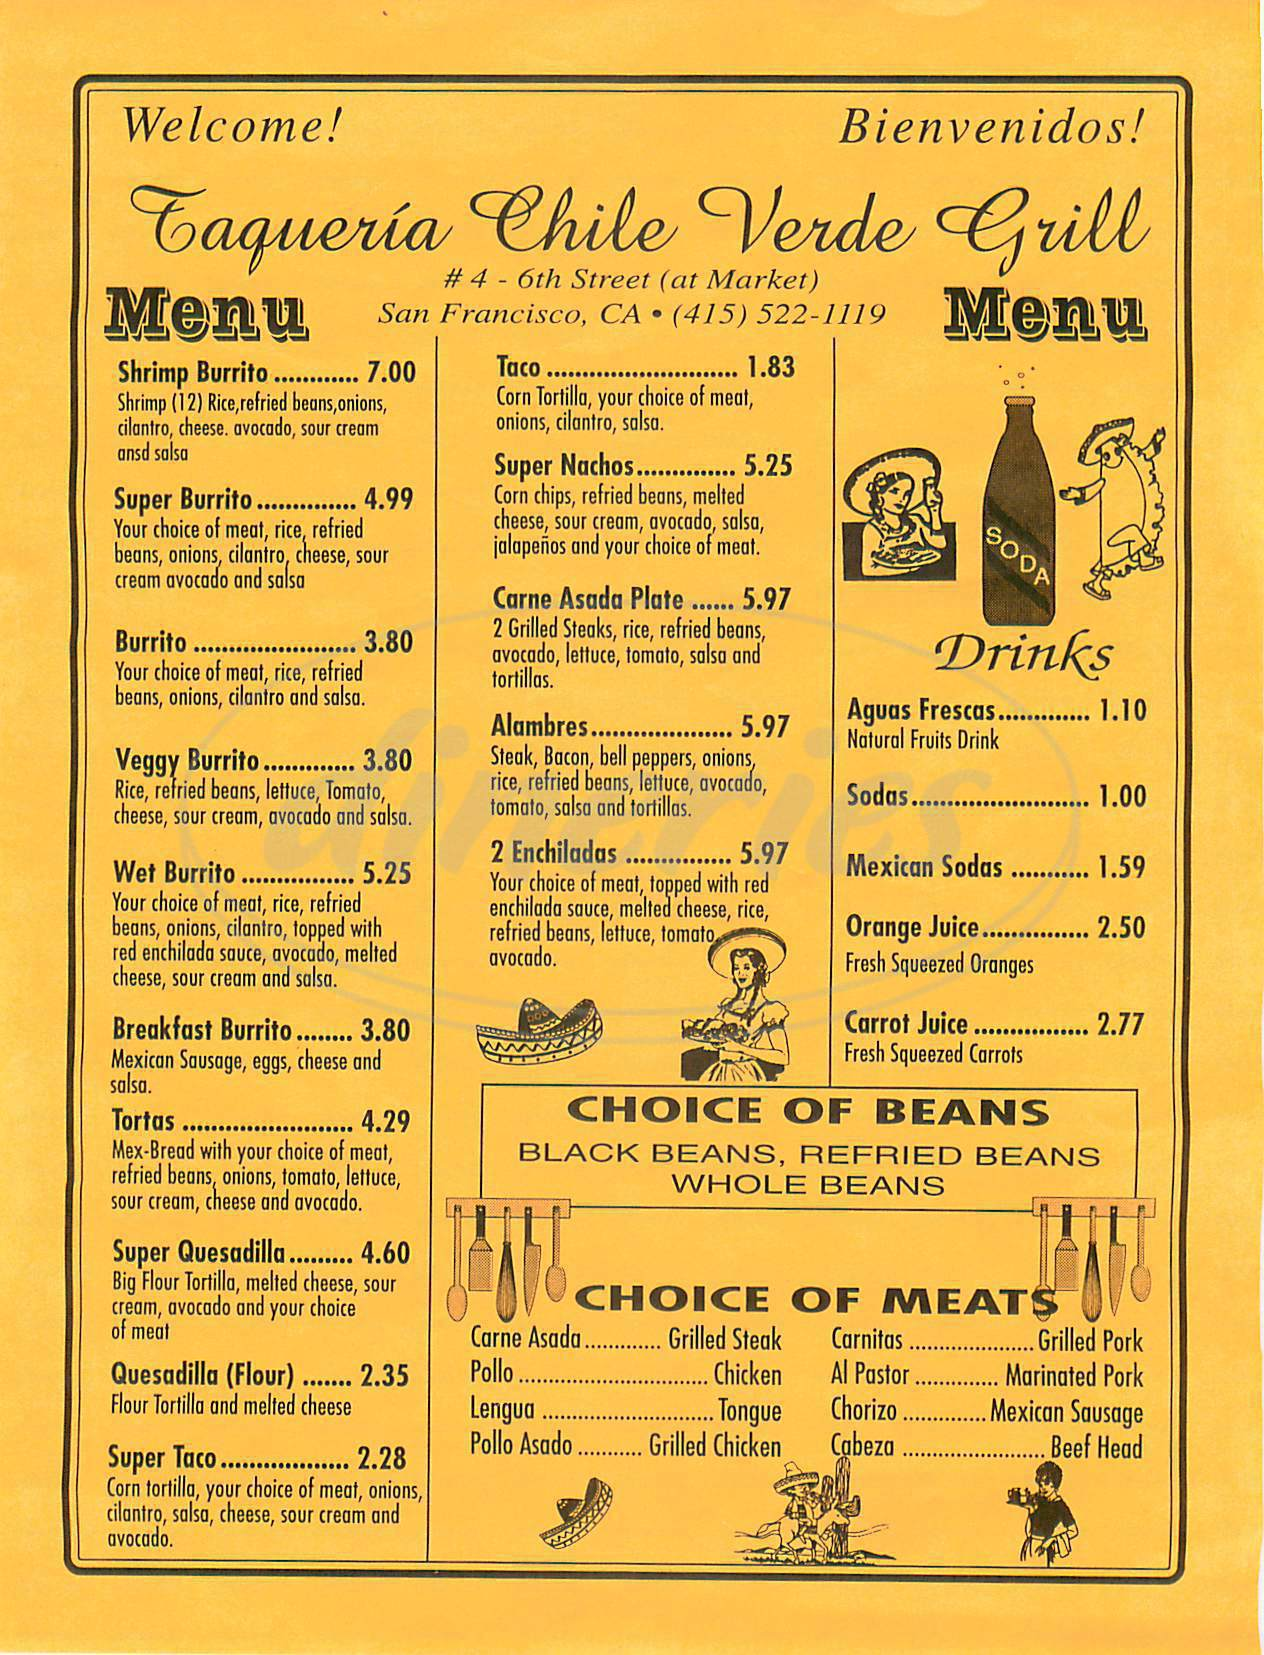 menu for Chile Verde Grill